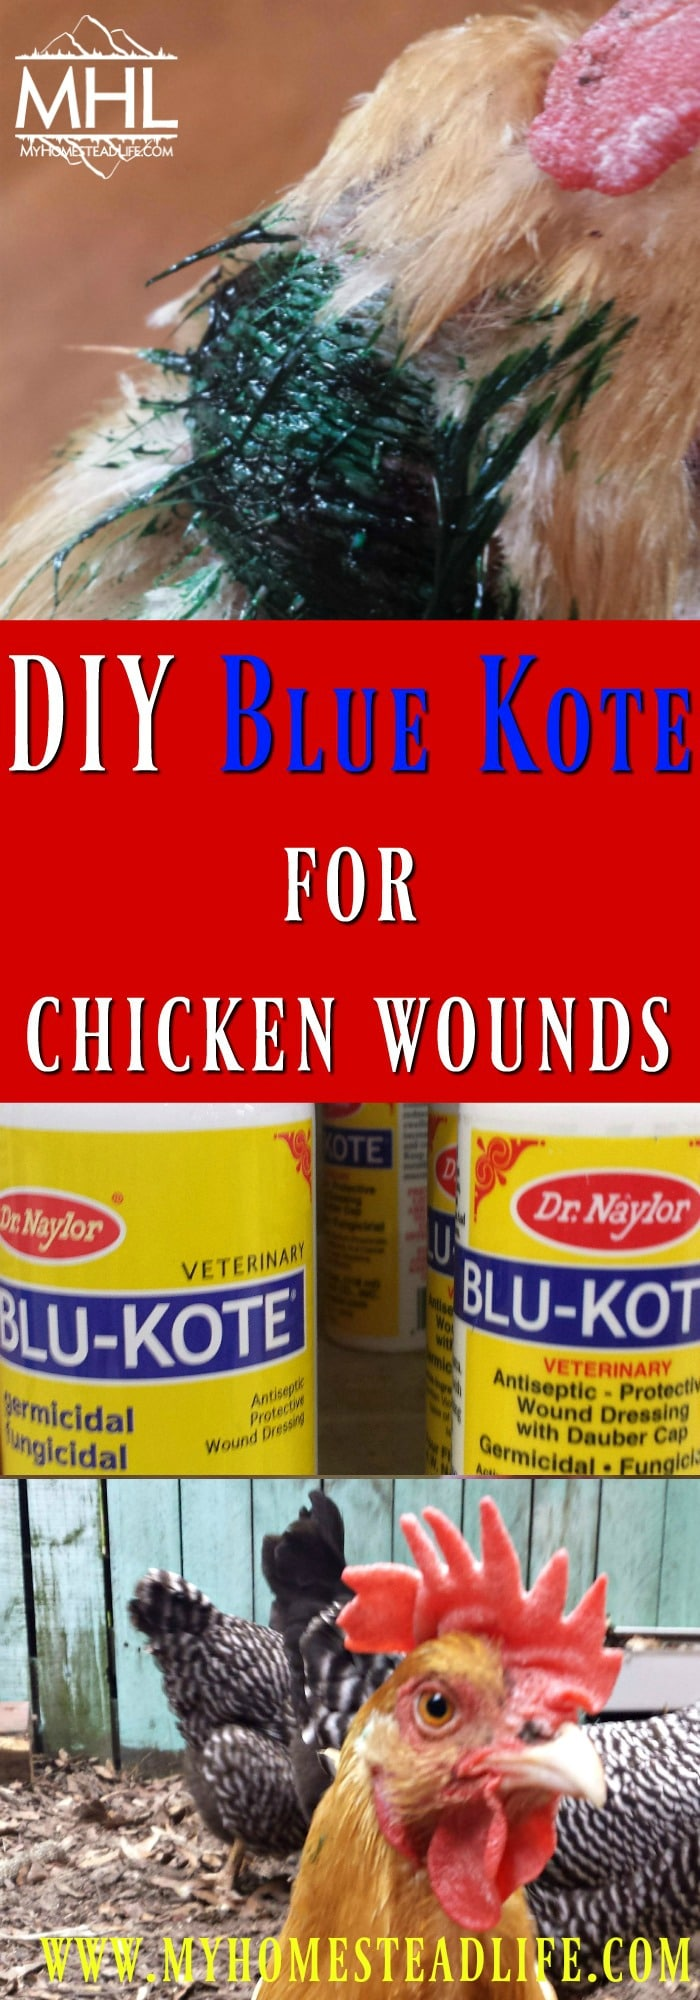 DIY Blue Kote For Chicken Wounds-